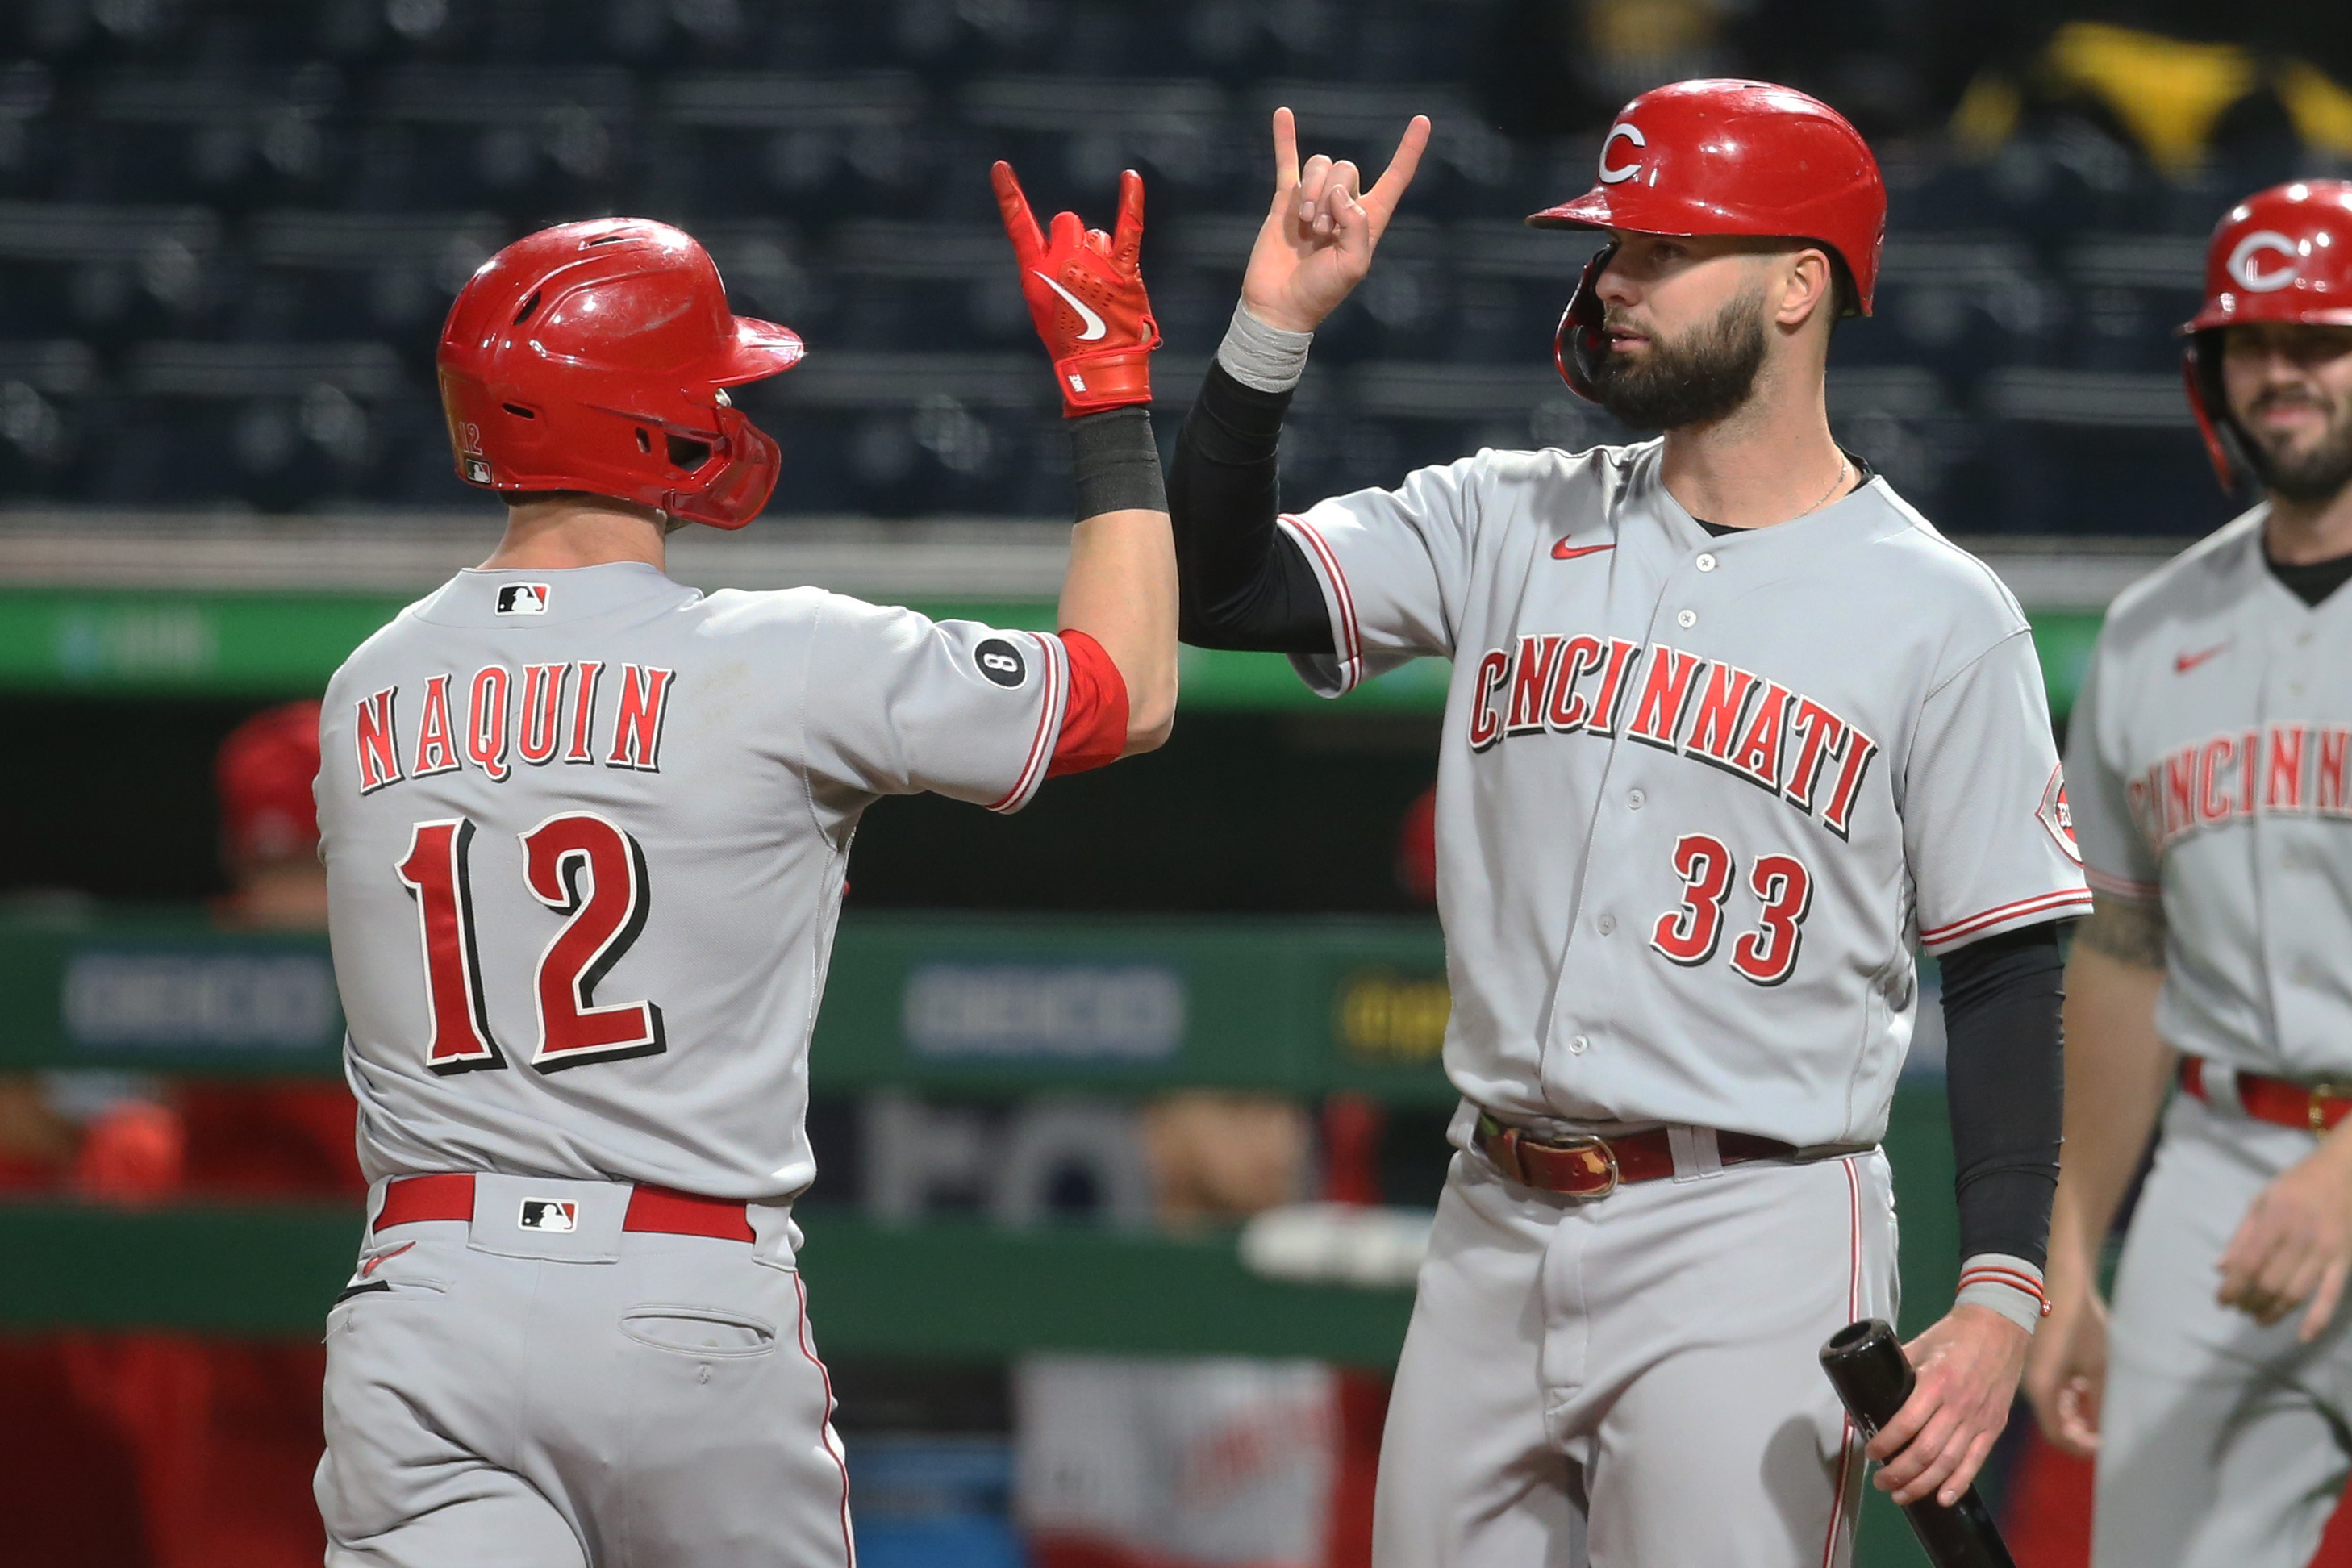 May 10, 2021; Pittsburgh, Pennsylvania, USA; Cincinnati Reds right fielder Jesse Winker (33) congratulates left fielder Tyler Naquin (12) on his three run home run against the Pittsburgh Pirates during the seventh inning at PNC Park. Mandatory Credit: Charles LeClaire-USA TODAY Sports